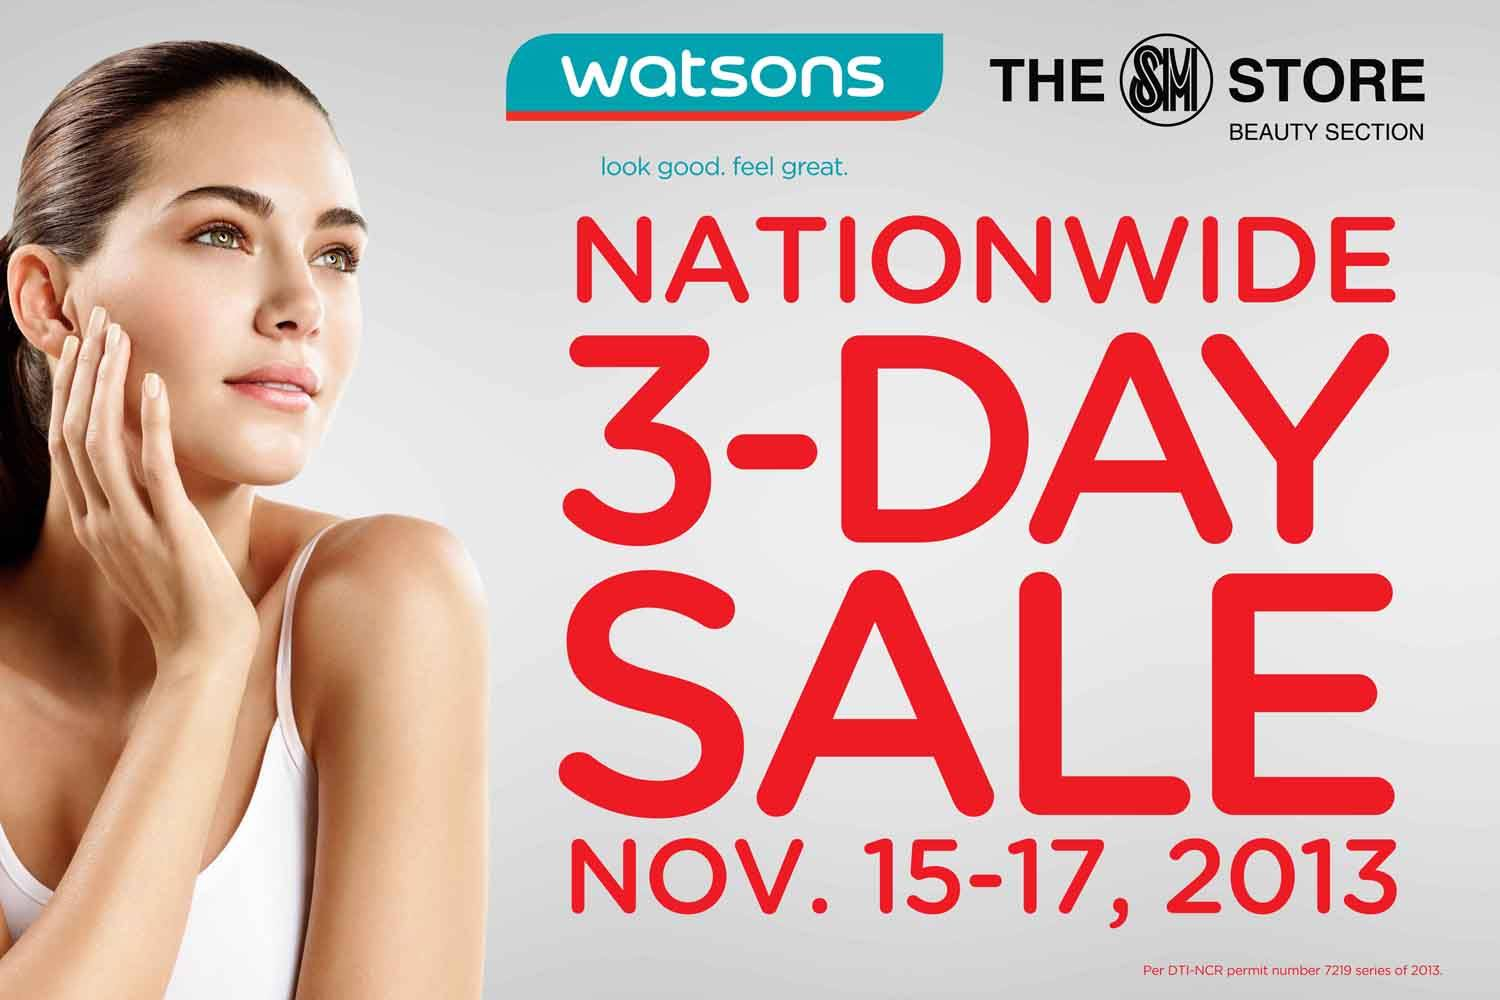 Watsons Nationwide Sale November 2013